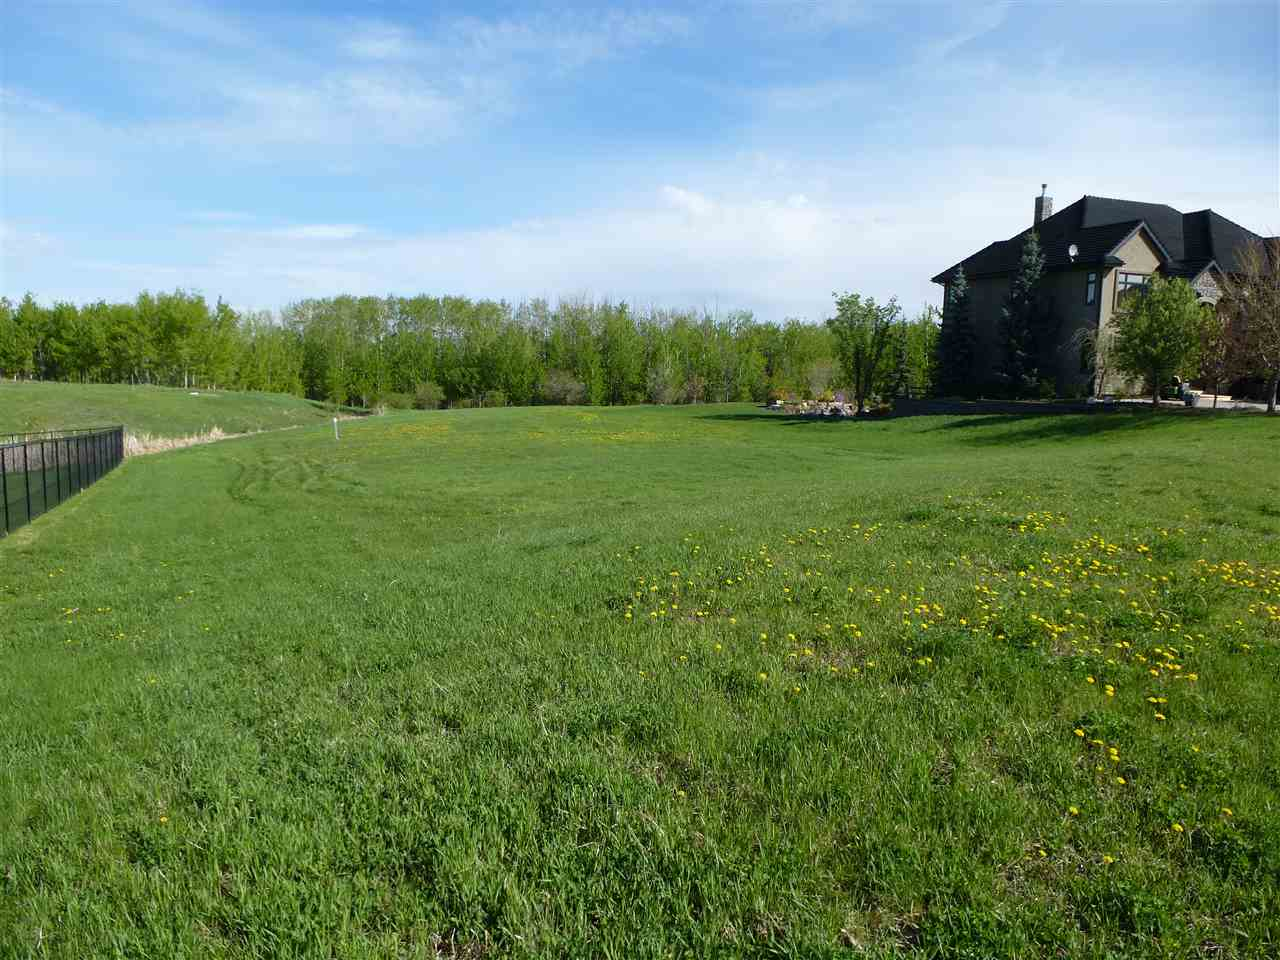 Photo 13: 60 53217 RGE RD 263 Road: Rural Parkland County Rural Land/Vacant Lot for sale : MLS(r) # E4065068